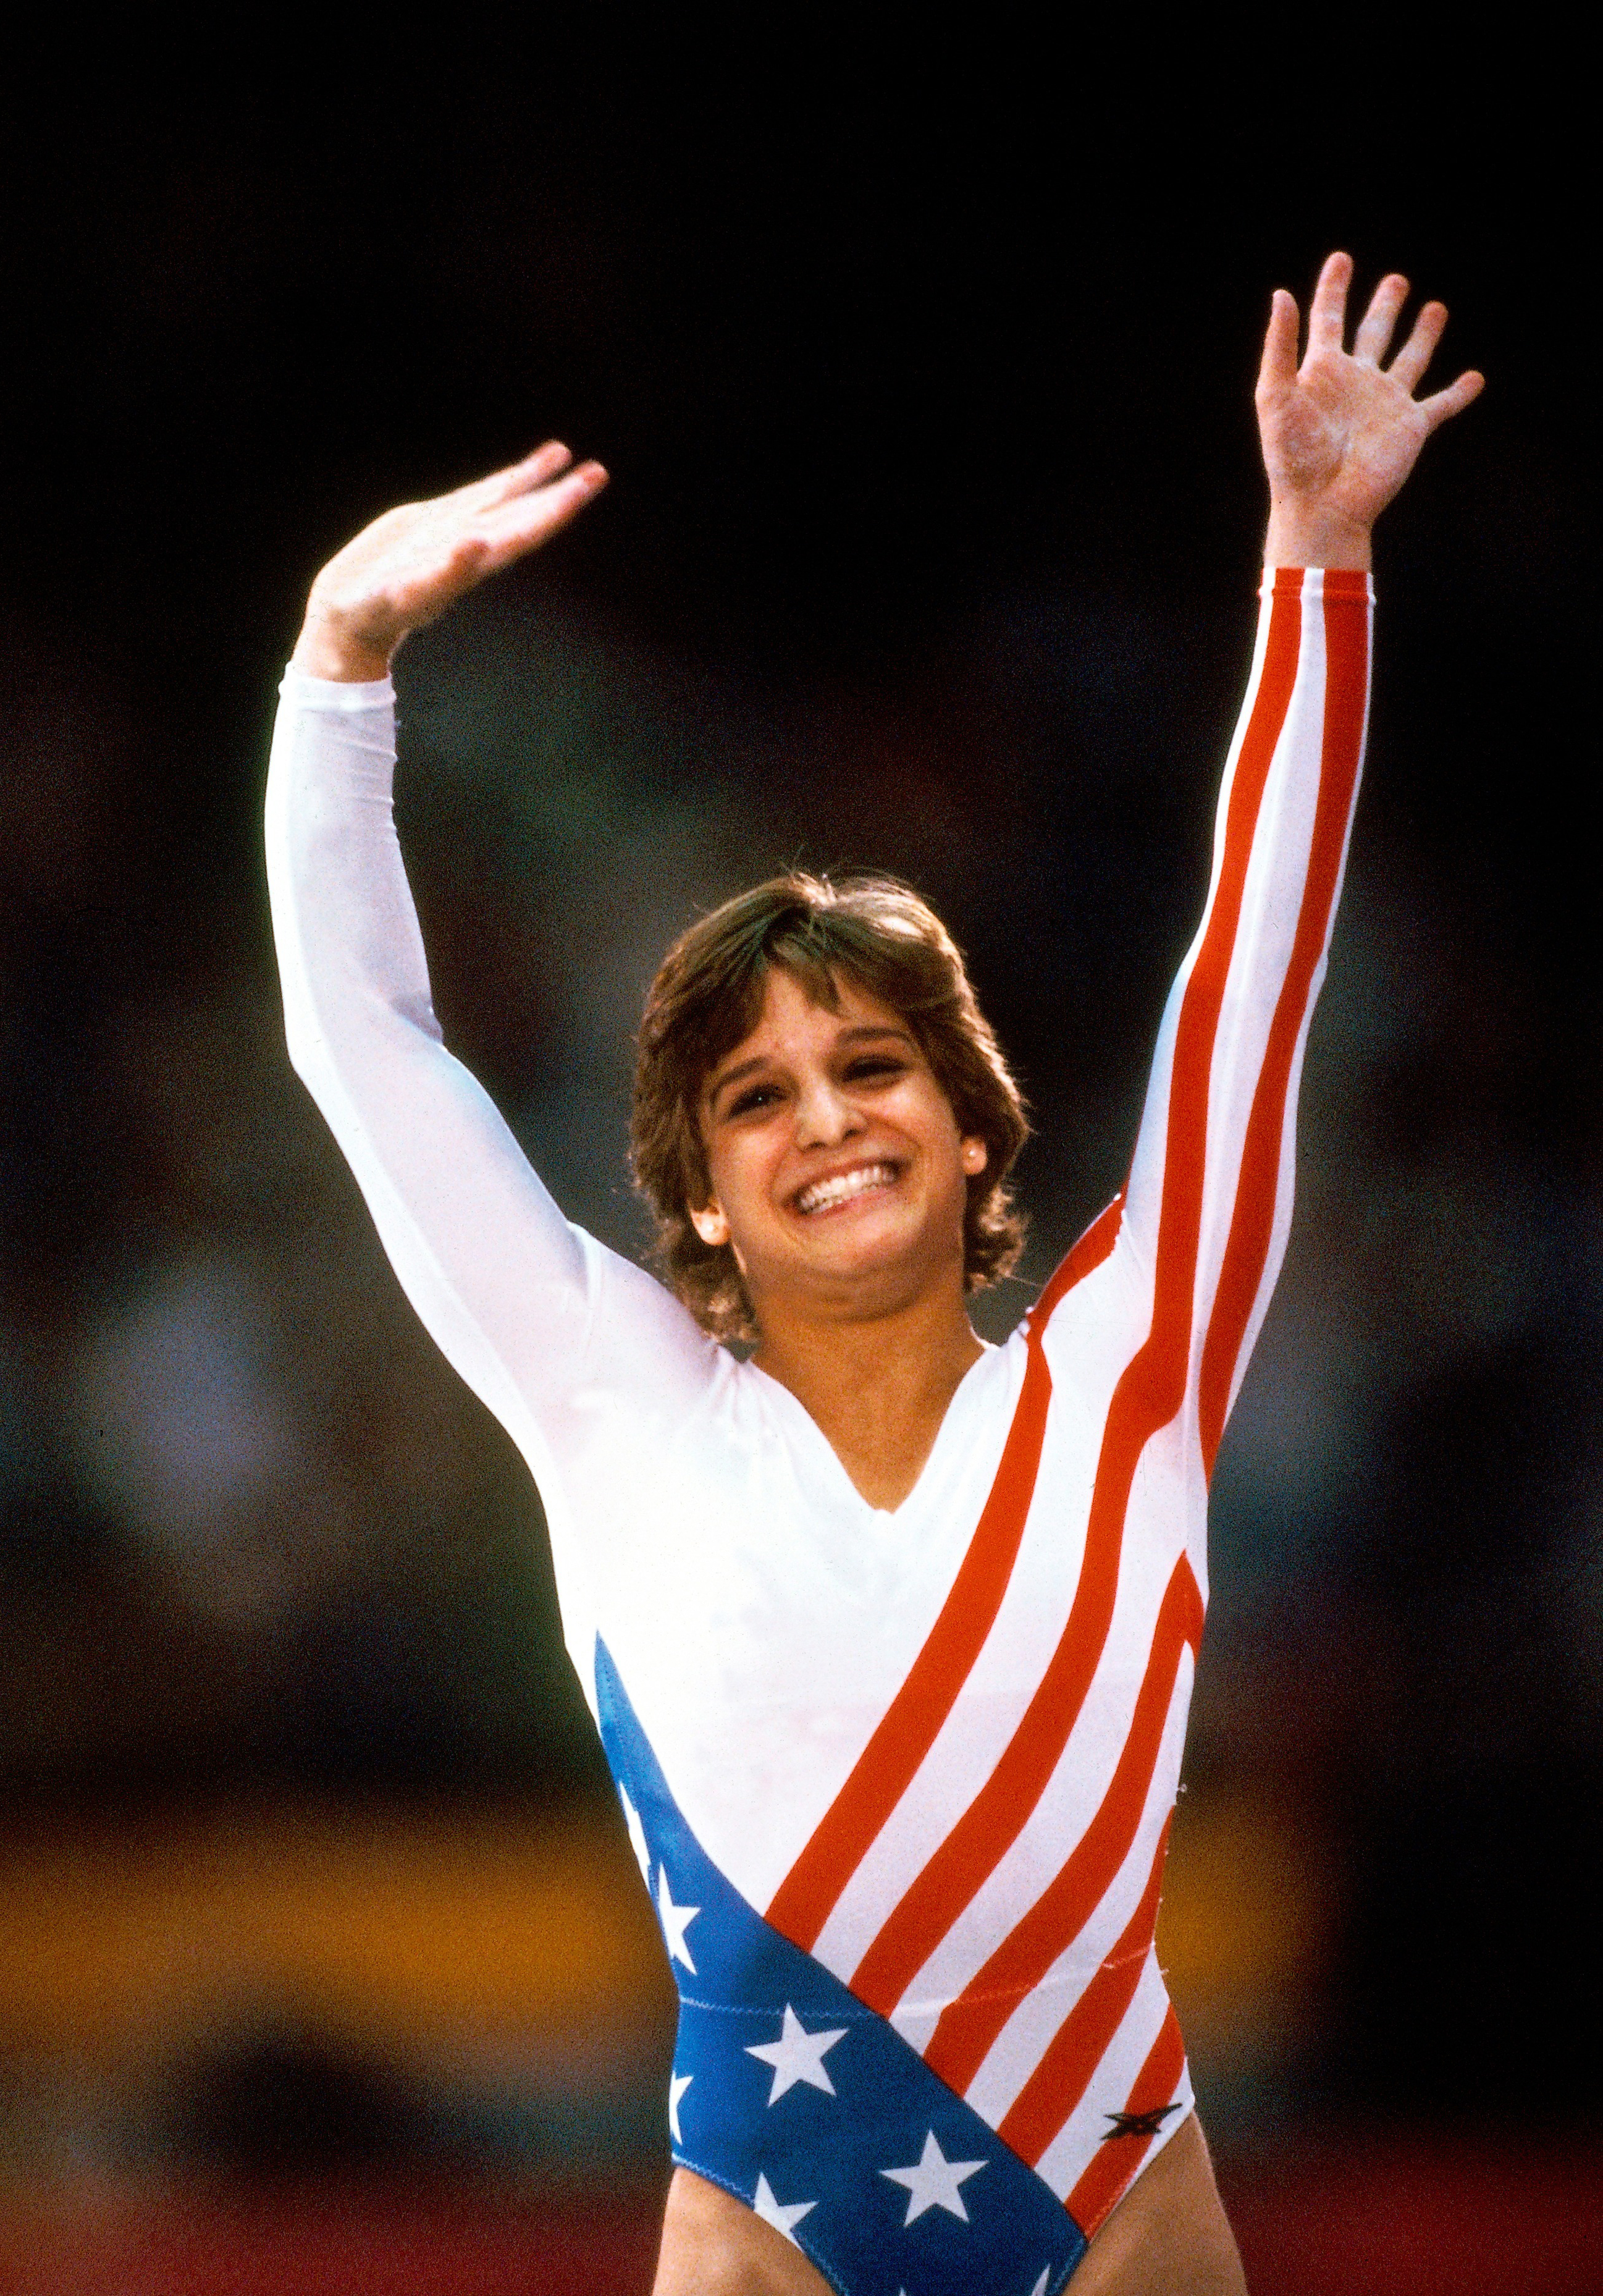 Something Mary lou retton thought